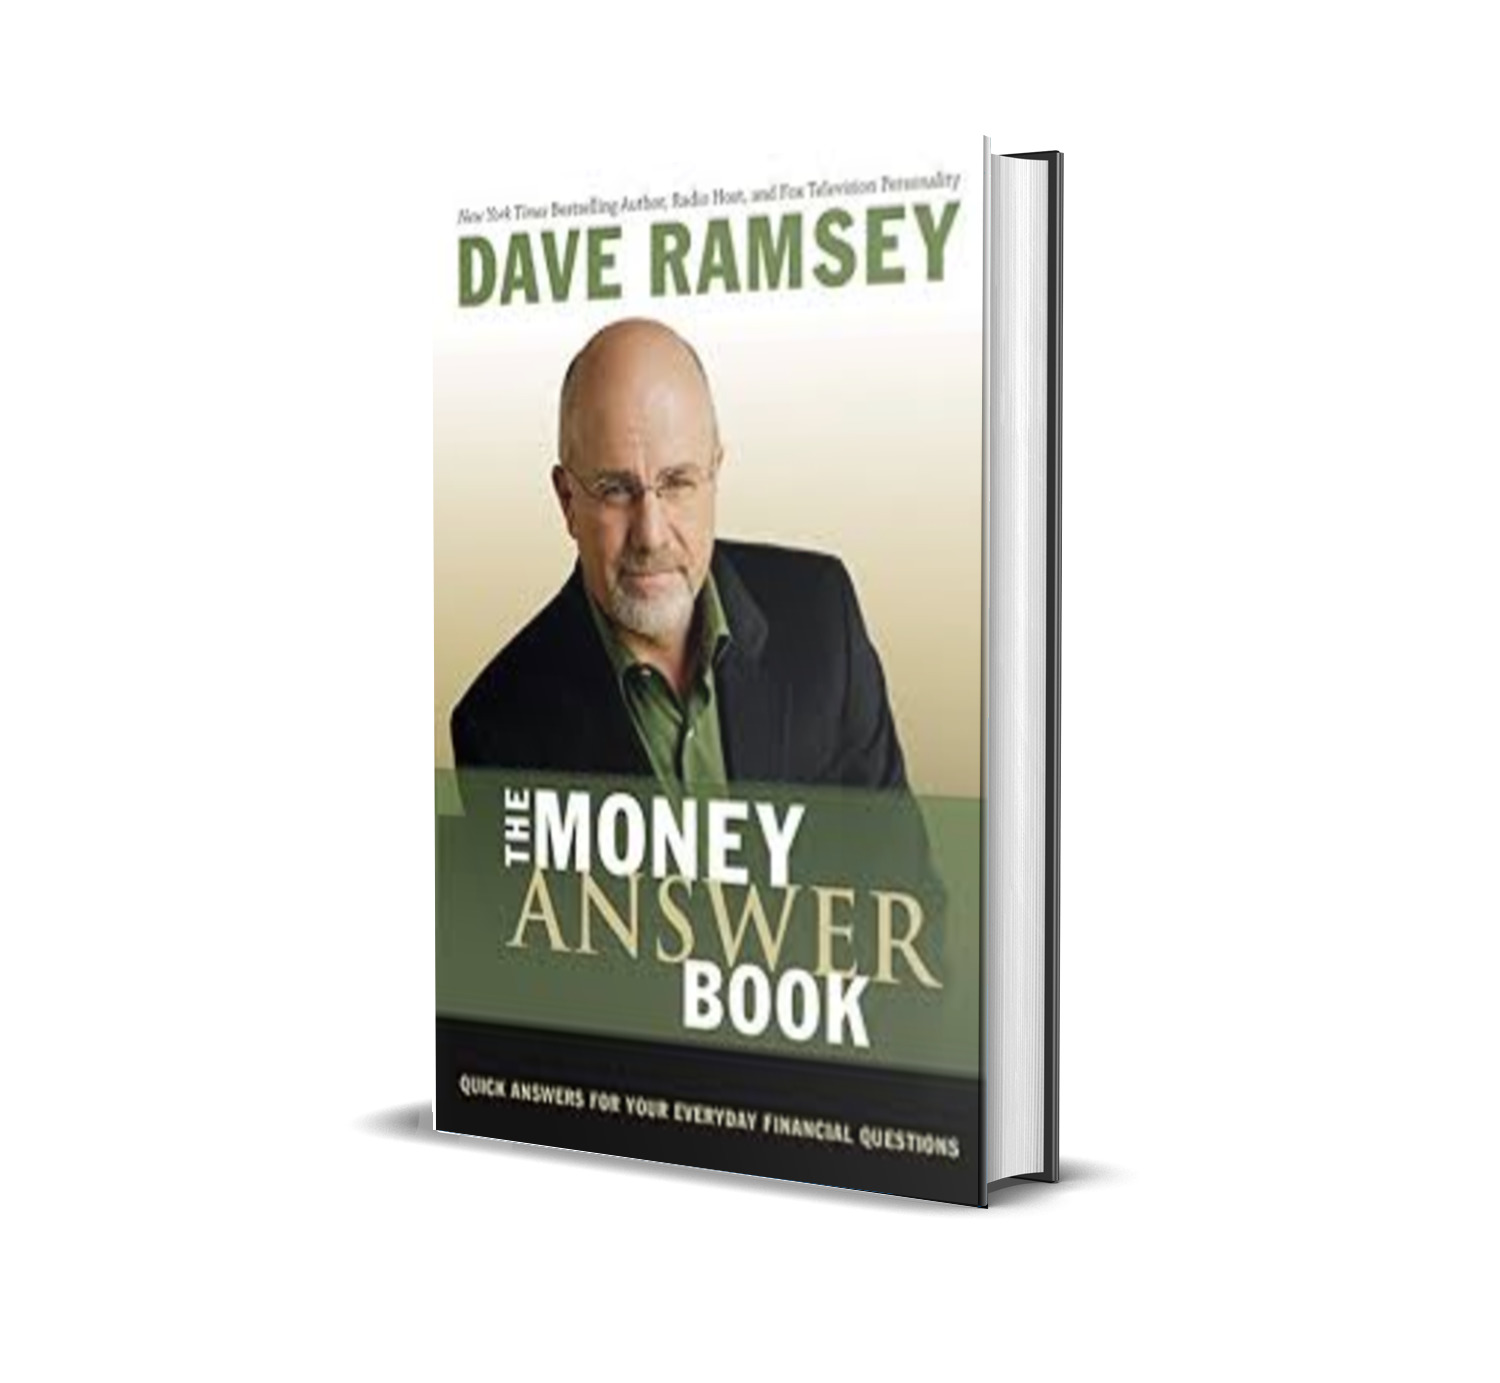 THE MONEY ANSWER BOOK - DAVE RAMSEY